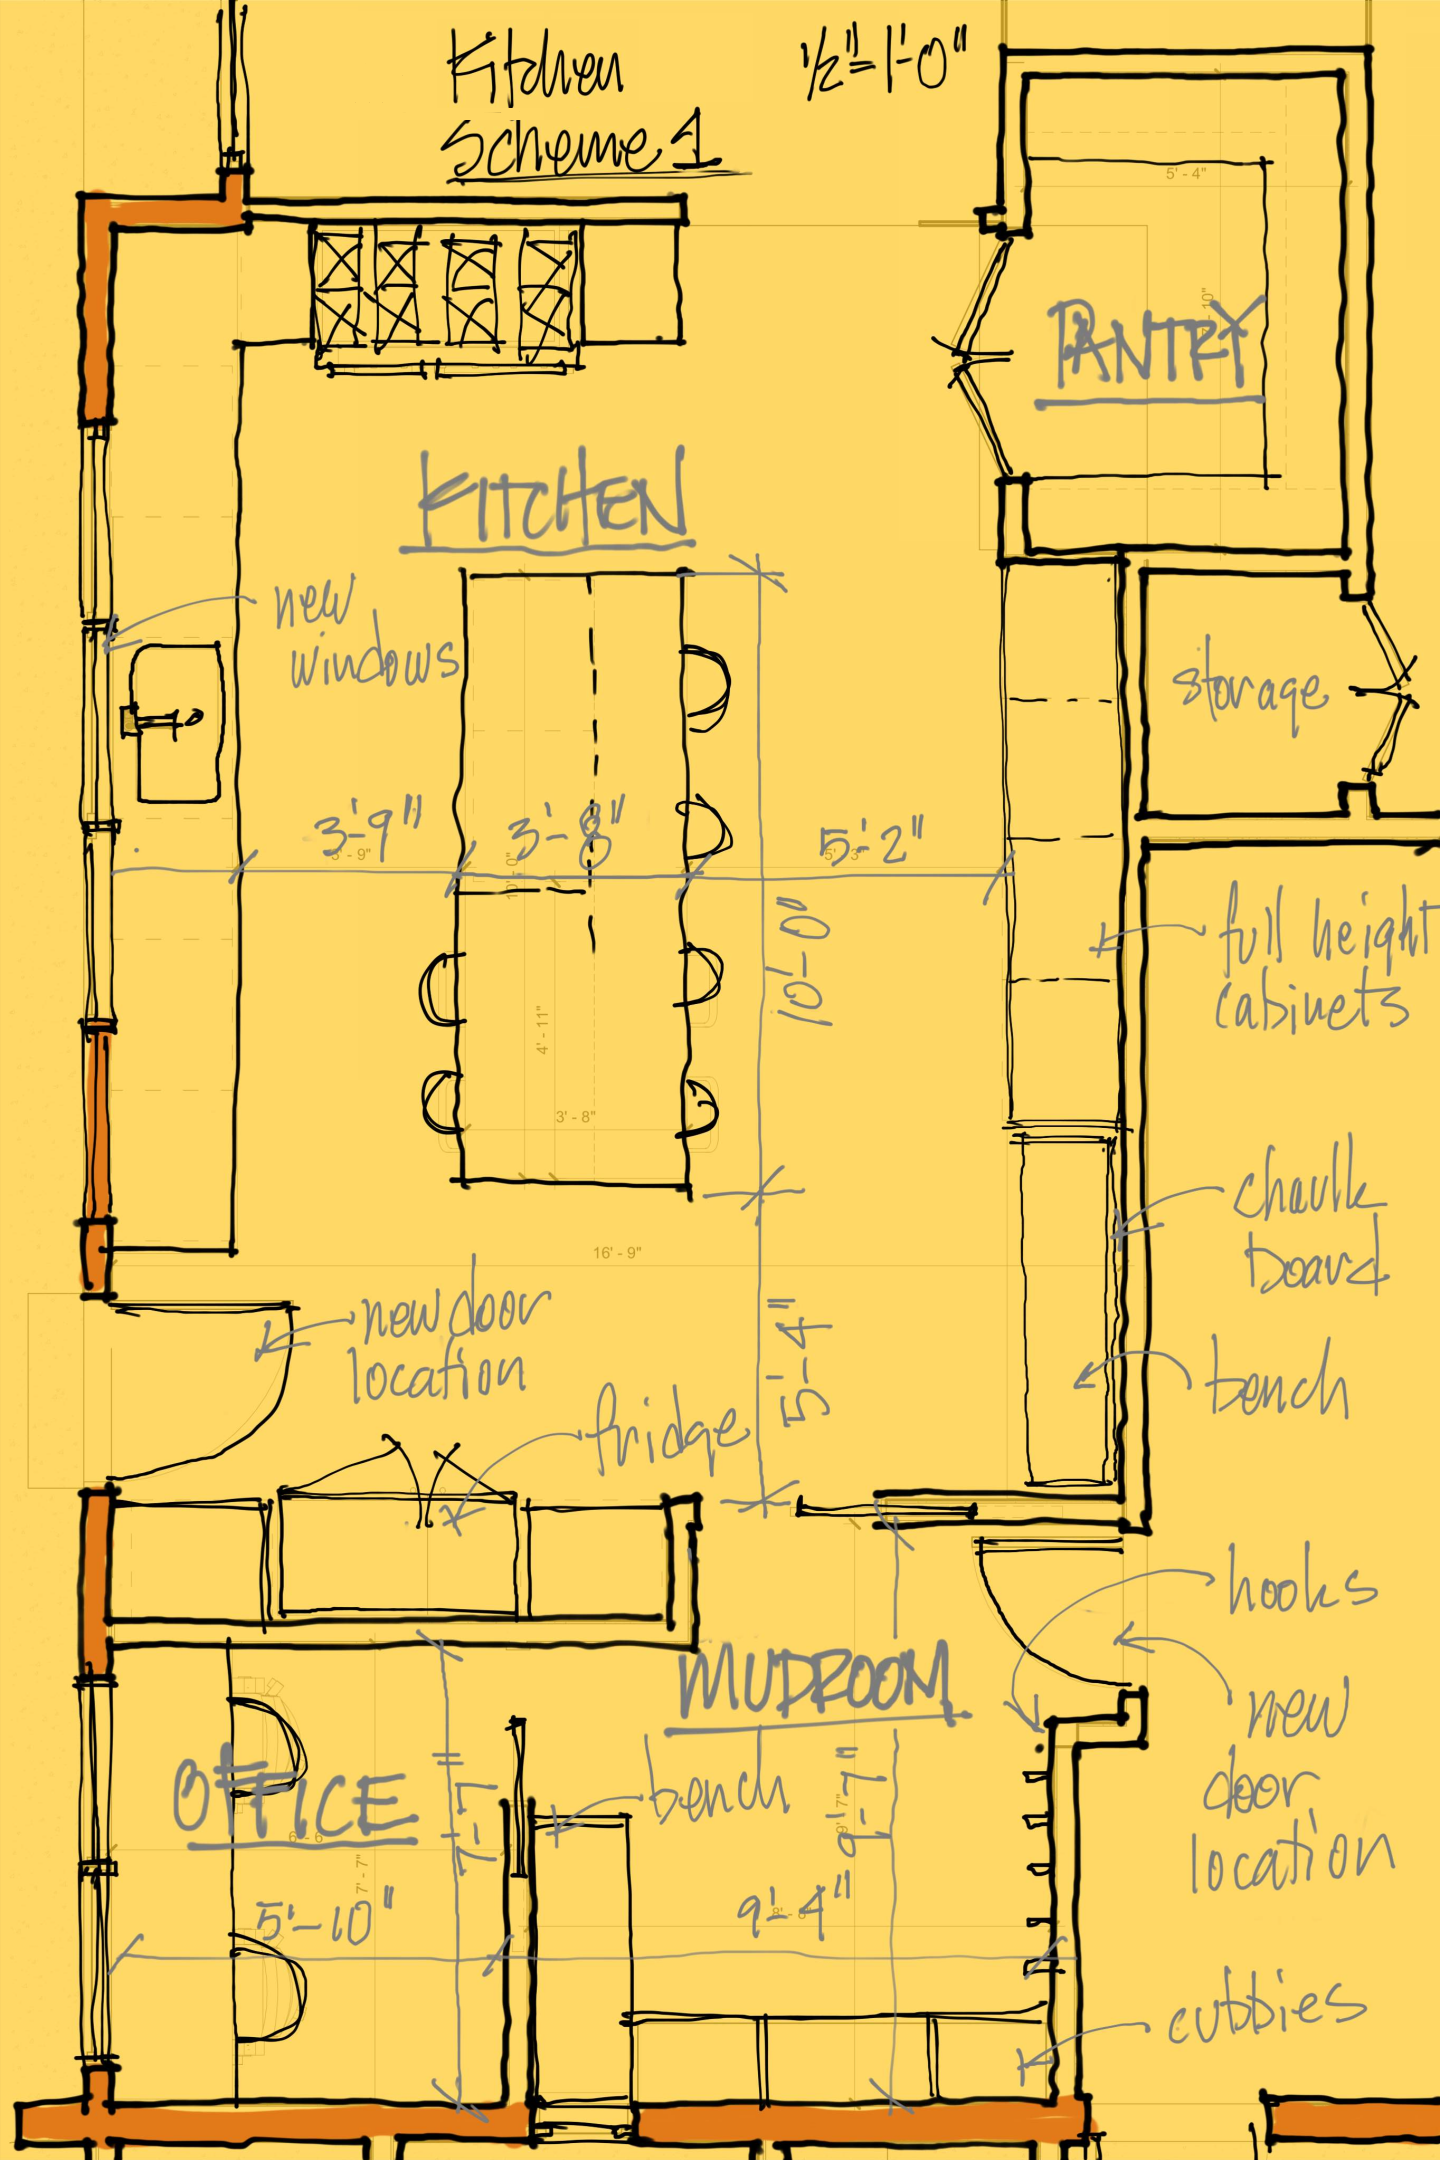 Wellshire Schematic Design Plan Sketch Kitchen Scheme 1.png